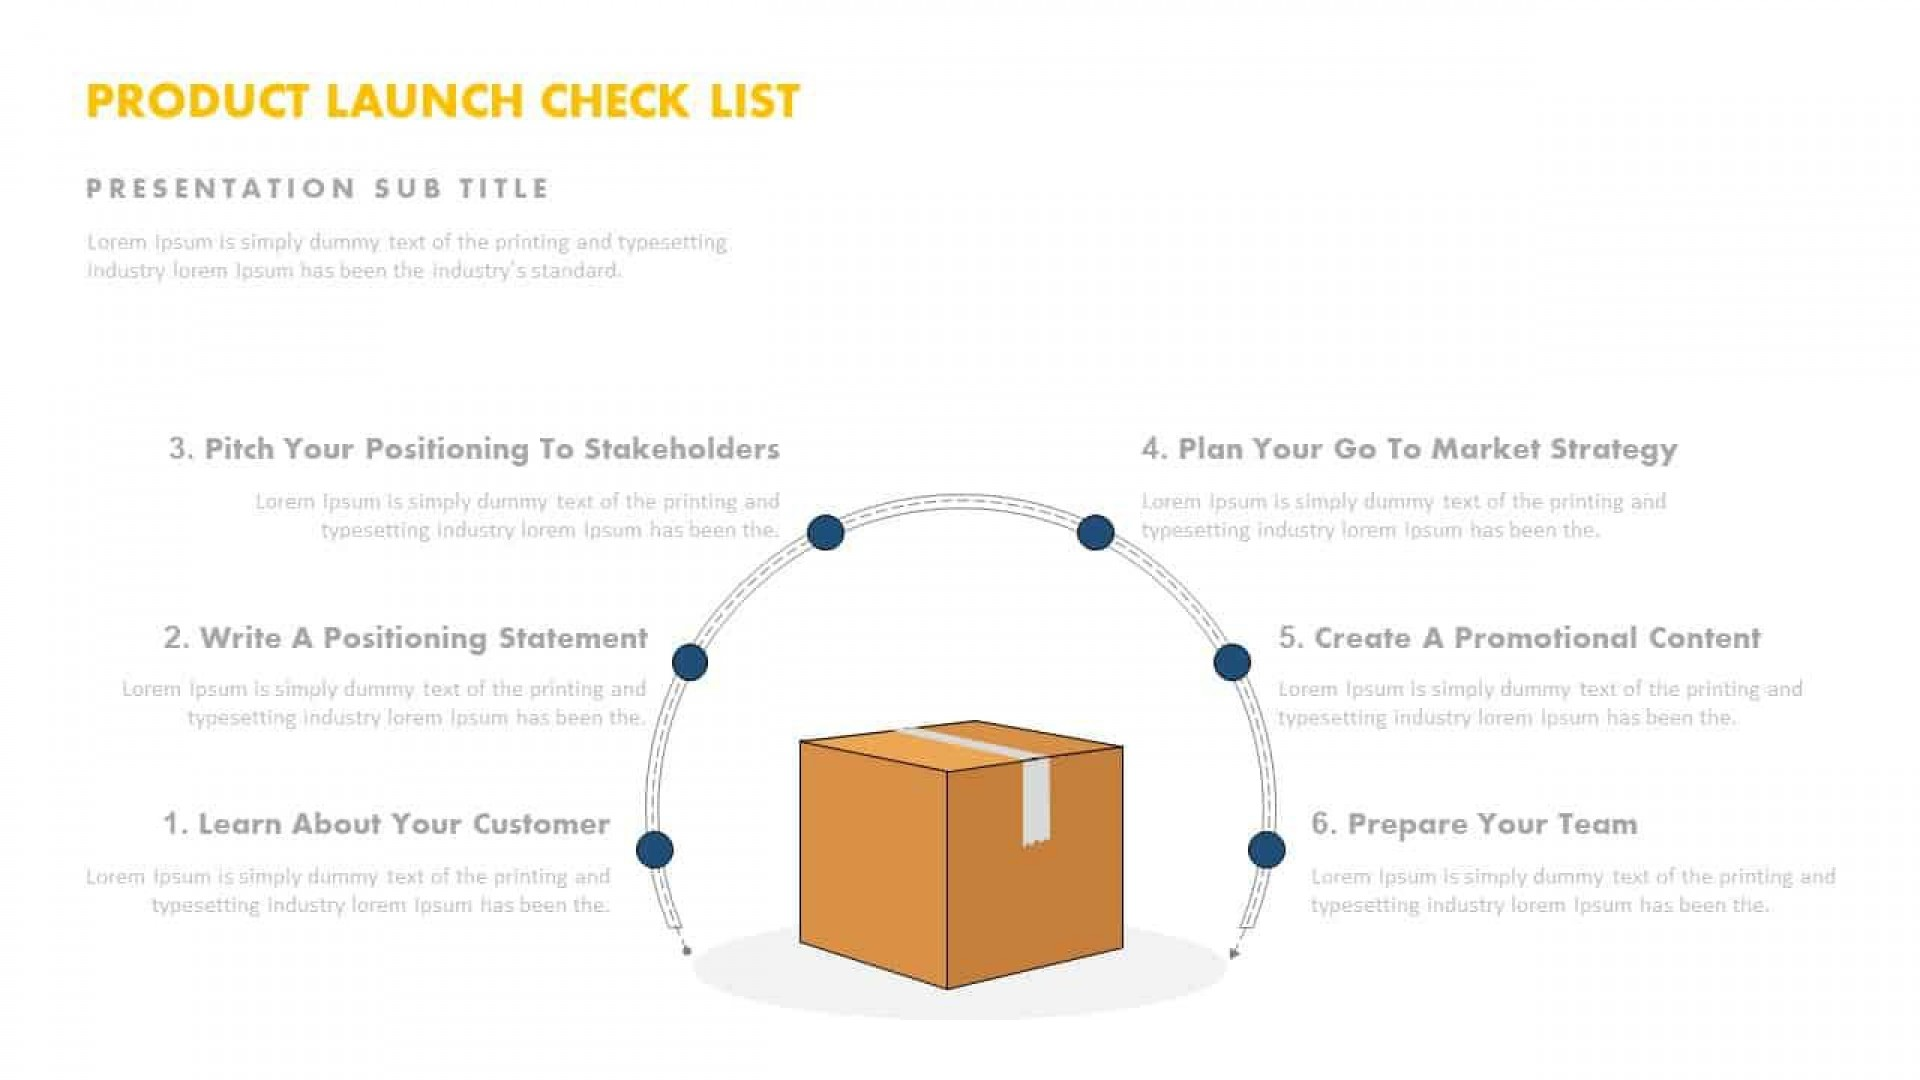 004 Frightening Product Launch Plan Powerpoint Template Free Photo 1920